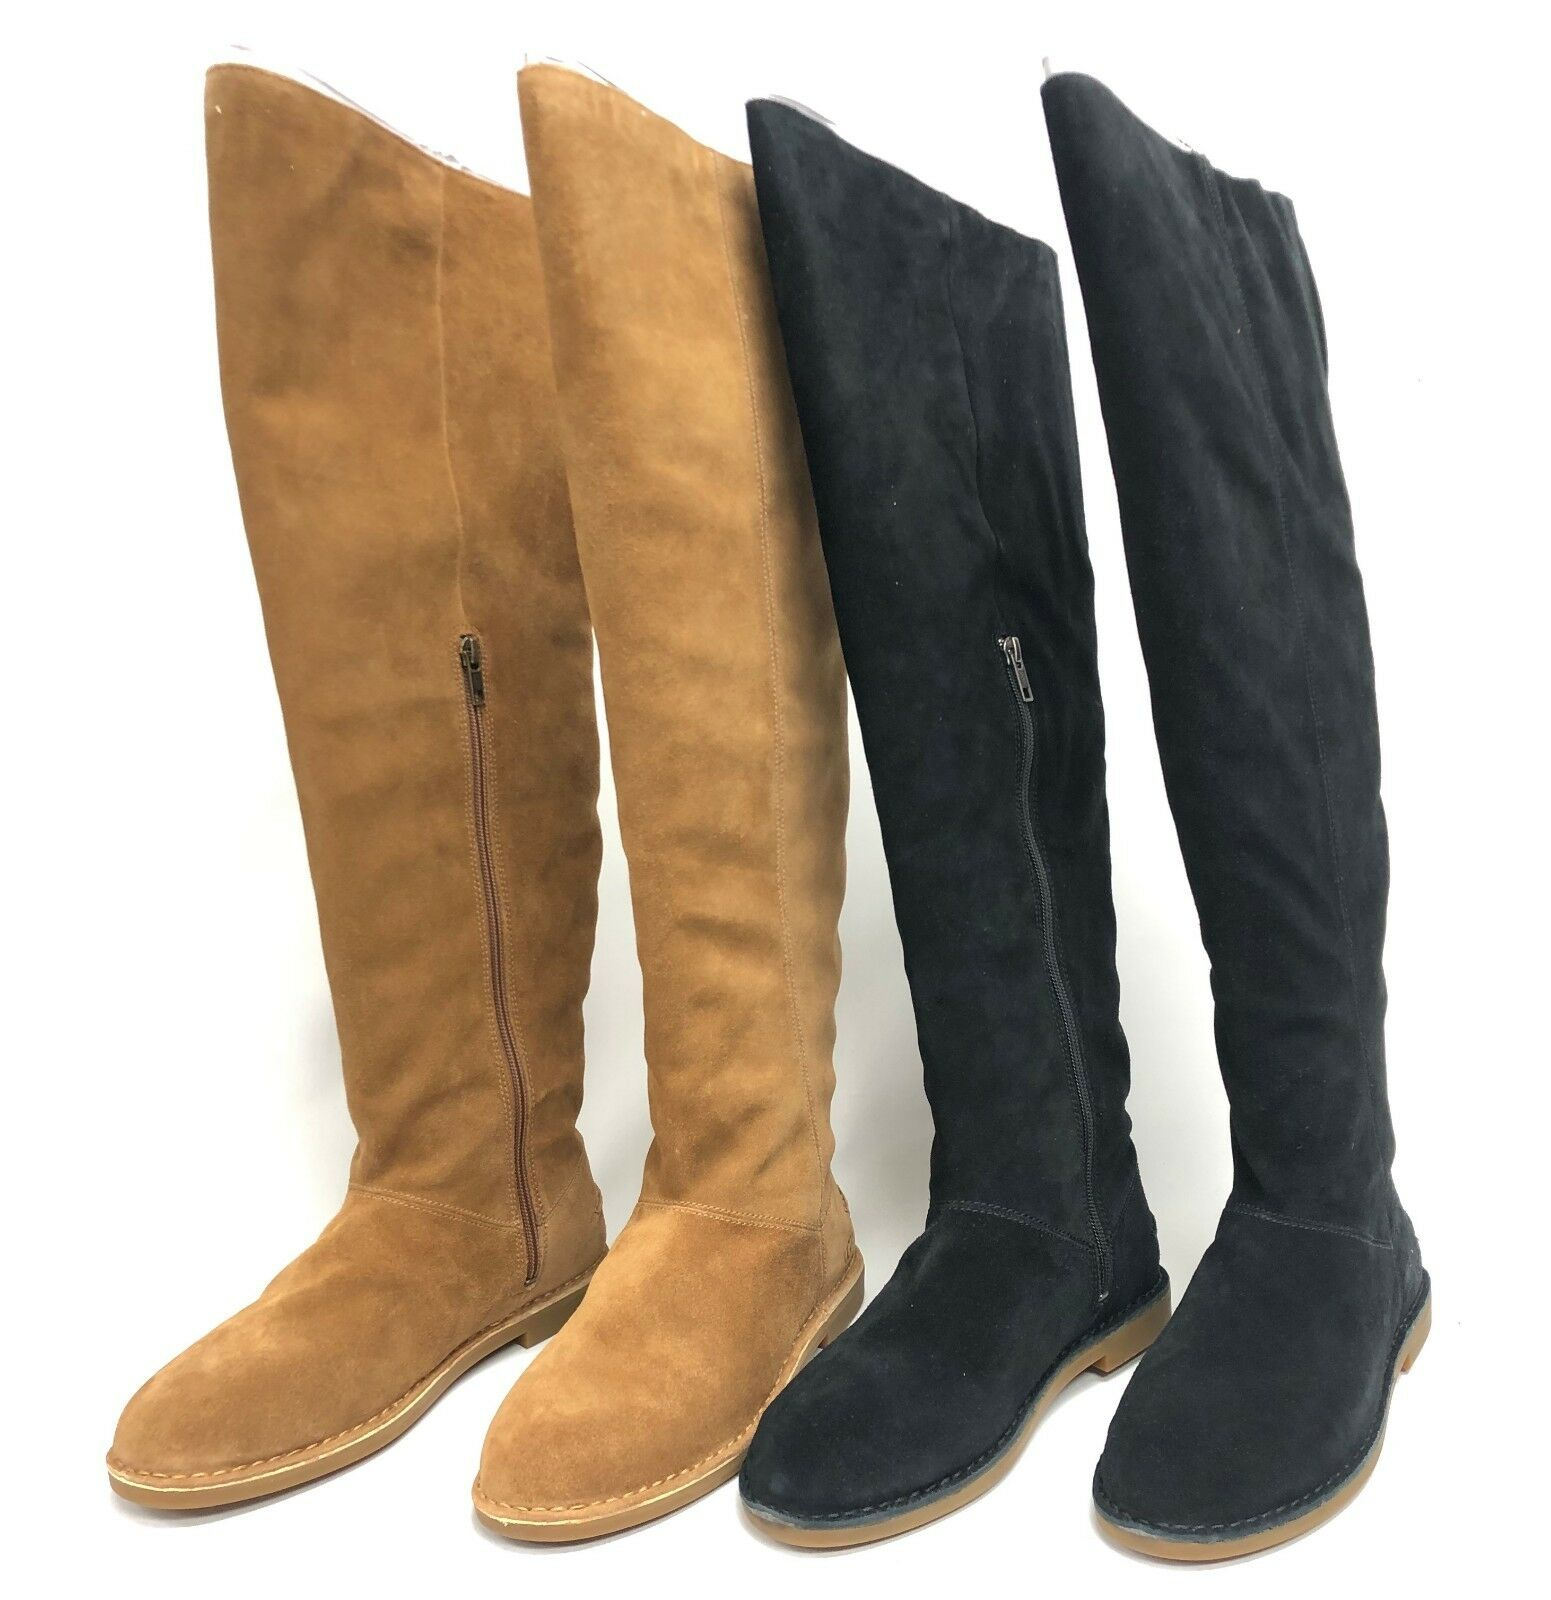 a3adcdd5641 Ugg Australia Loma Over the Knee Boot Black or Chestnut 1095394 Suede Tall  Boots